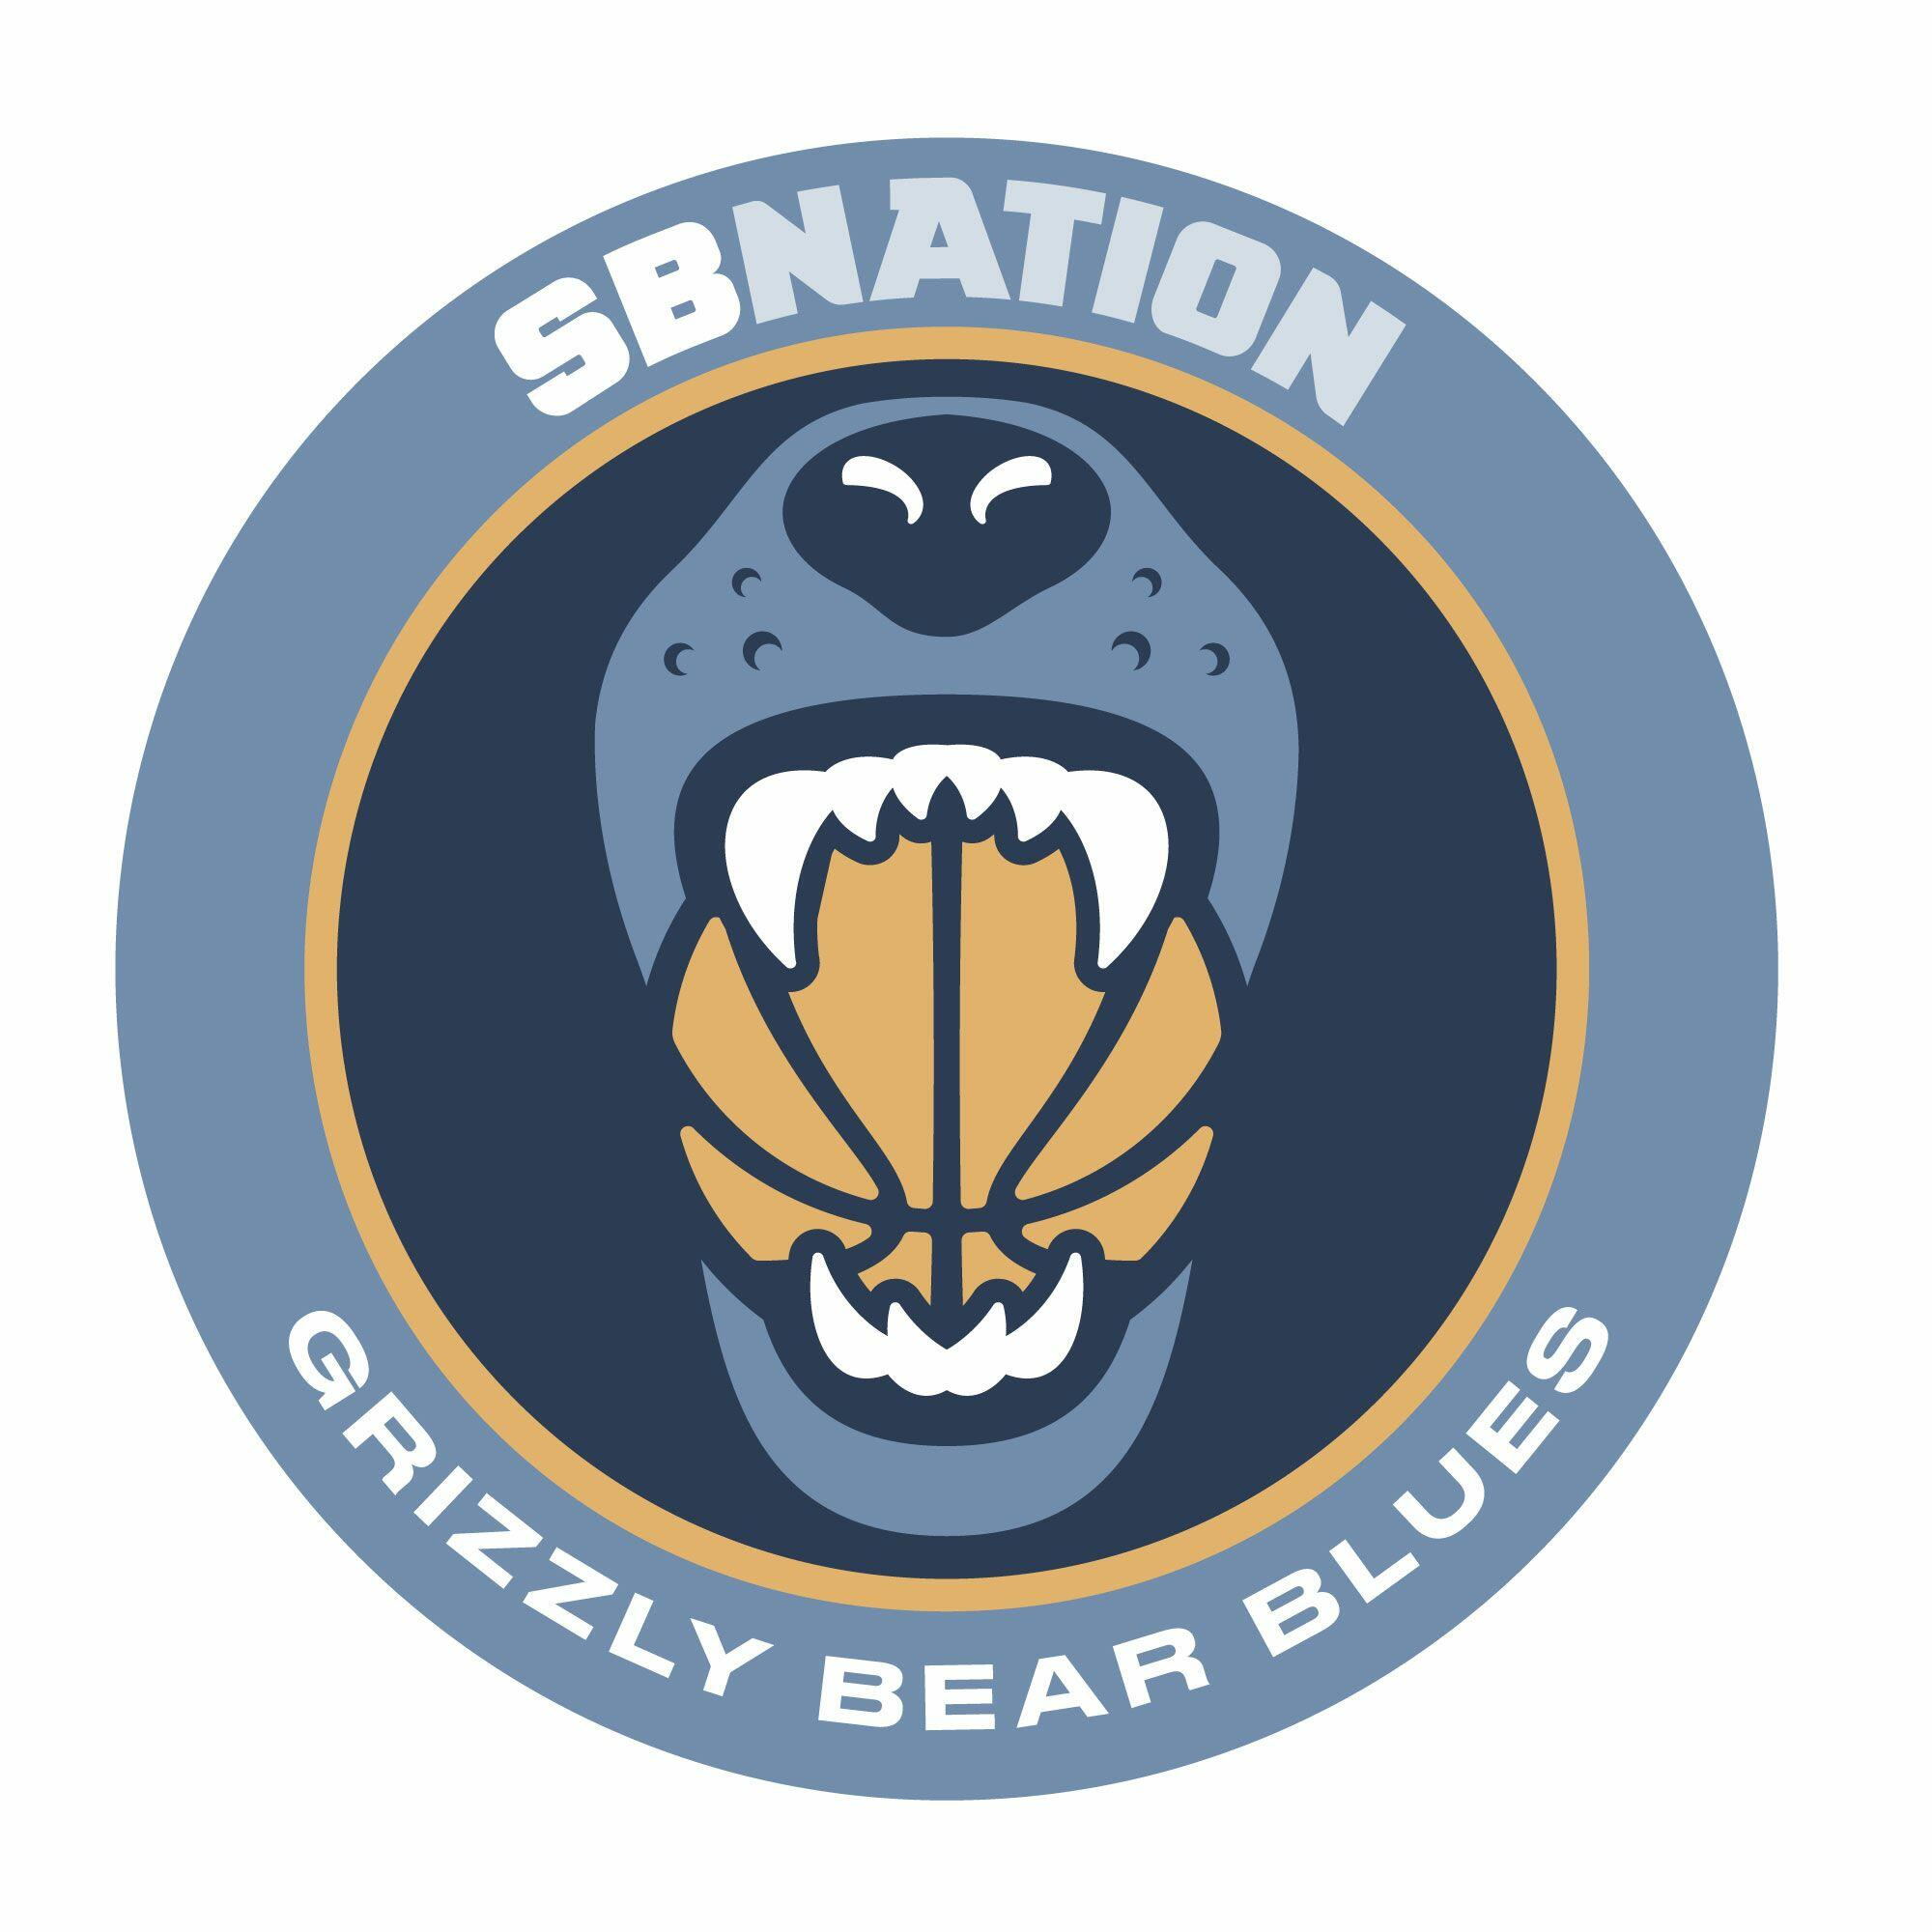 Listen to the Grizzly Bear Blues: for Memphis Grizzlies fans Episode - Core 4: Reflections on the unfortunate luck for the Memphis Grizzlies in the Bubble on iHeartRadio   iHeartRadio